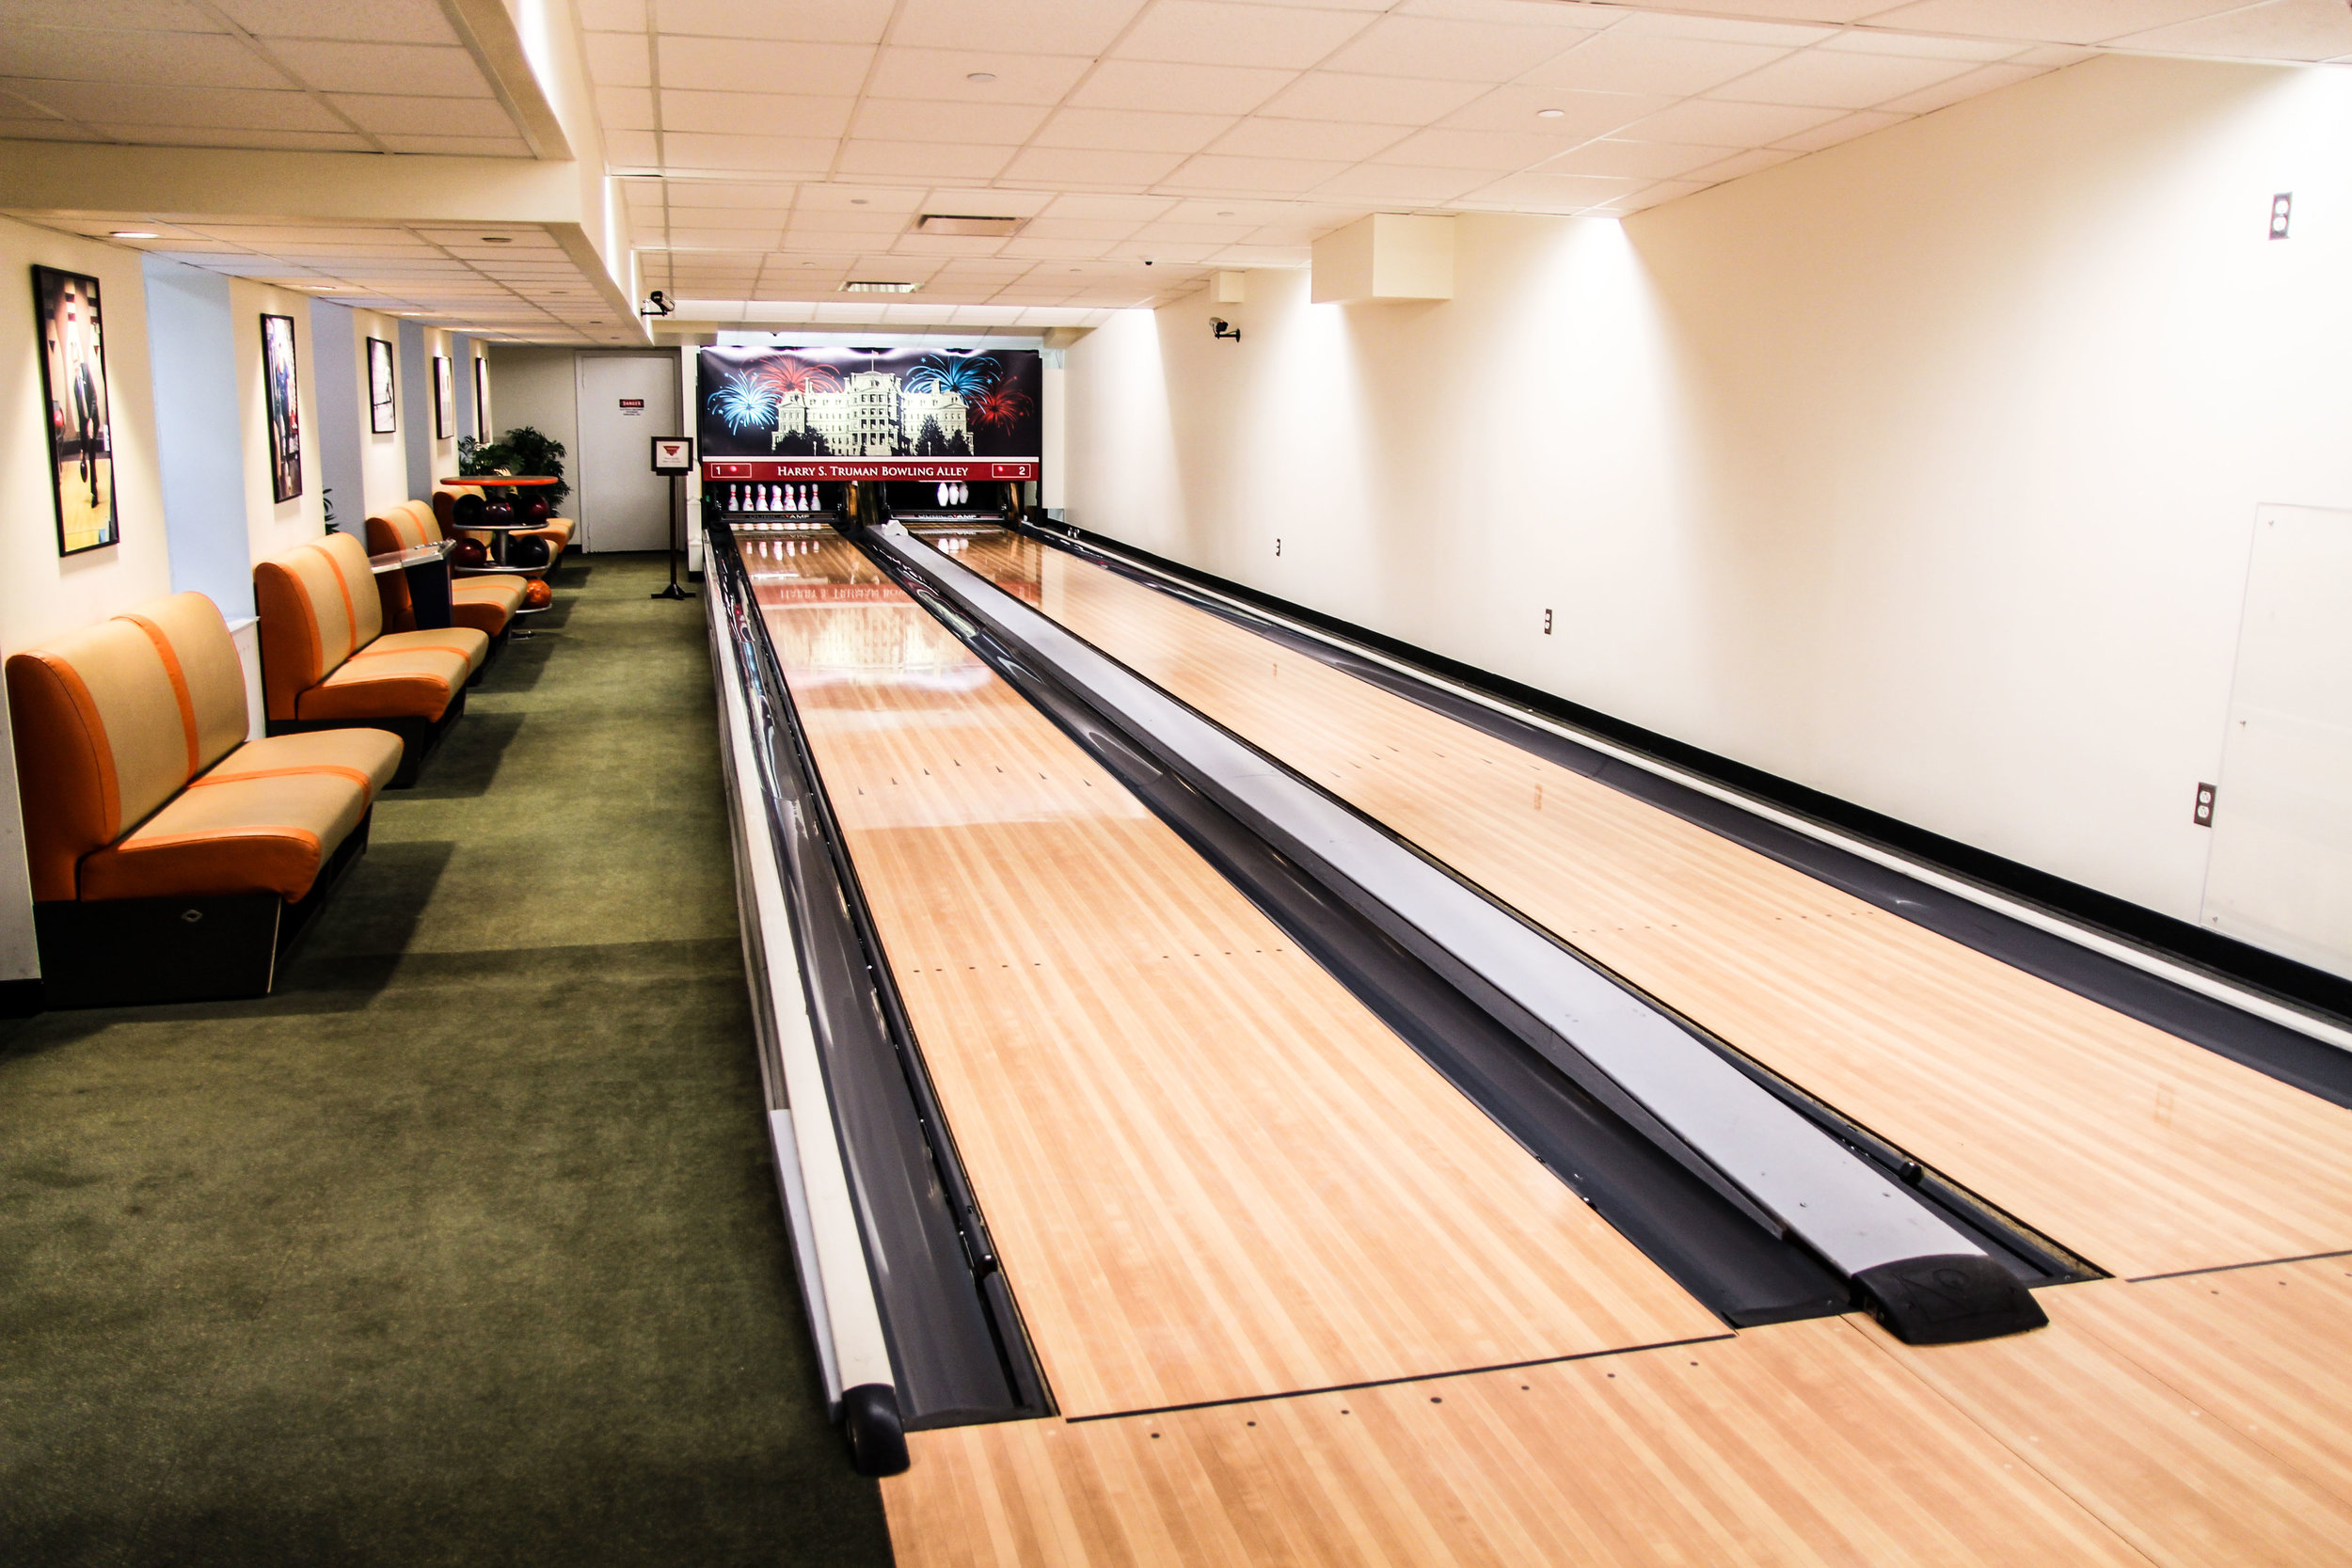 Time to bowl.